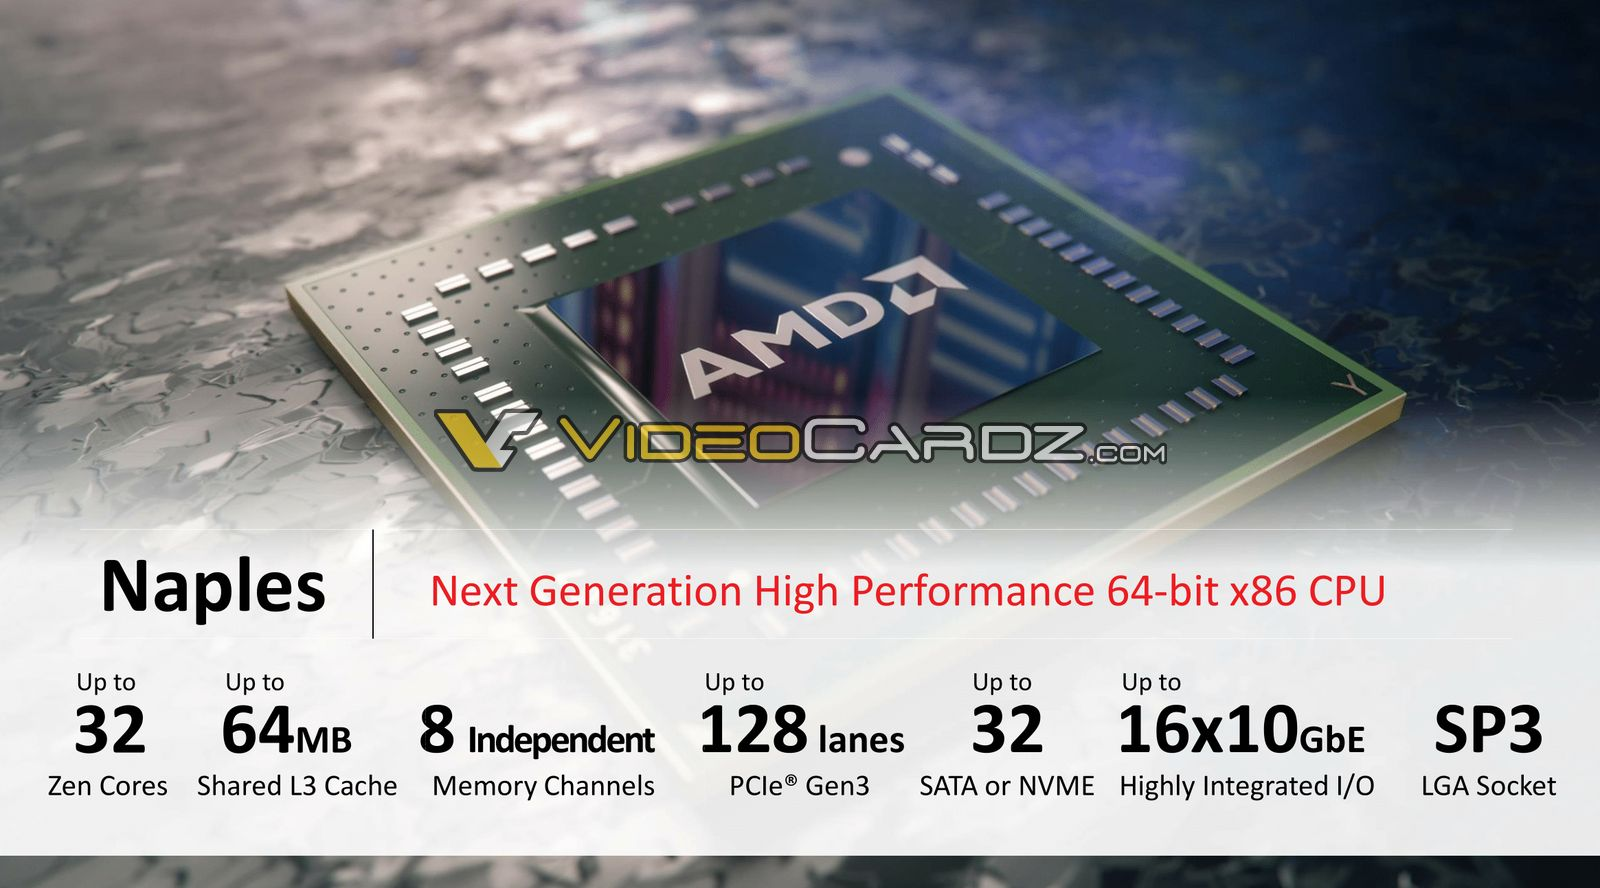 hight resolution of one interesting details confirmed in the block diagram is that the naples cpu is based on four zeppelin dies which equivalent to 32 cores 8 cores per zps